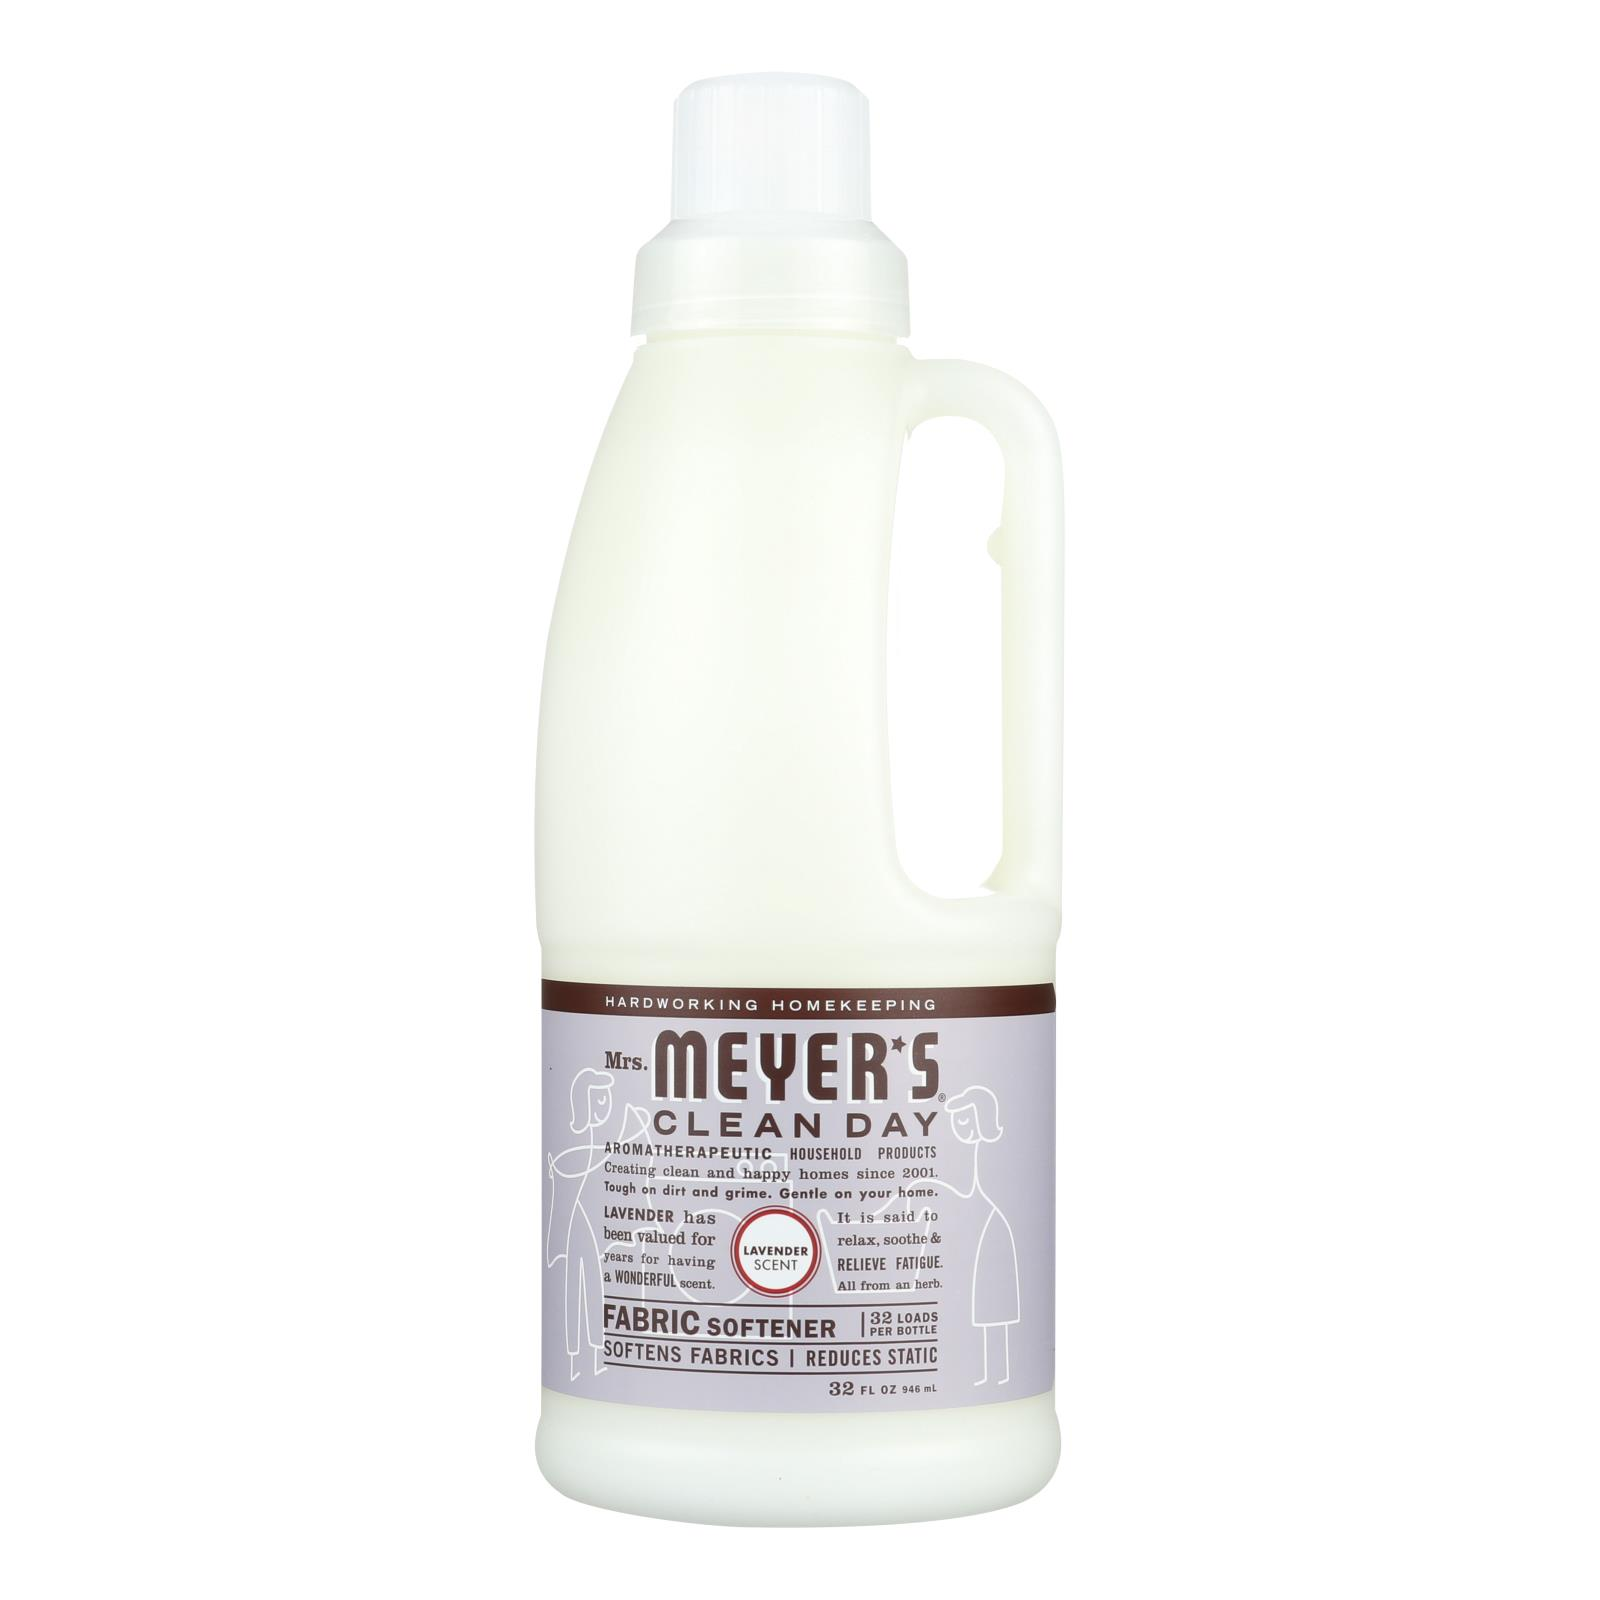 Mrs. Meyer's Clean Day - Fabric Softener - Lavender - Case of 6 - 32 oz